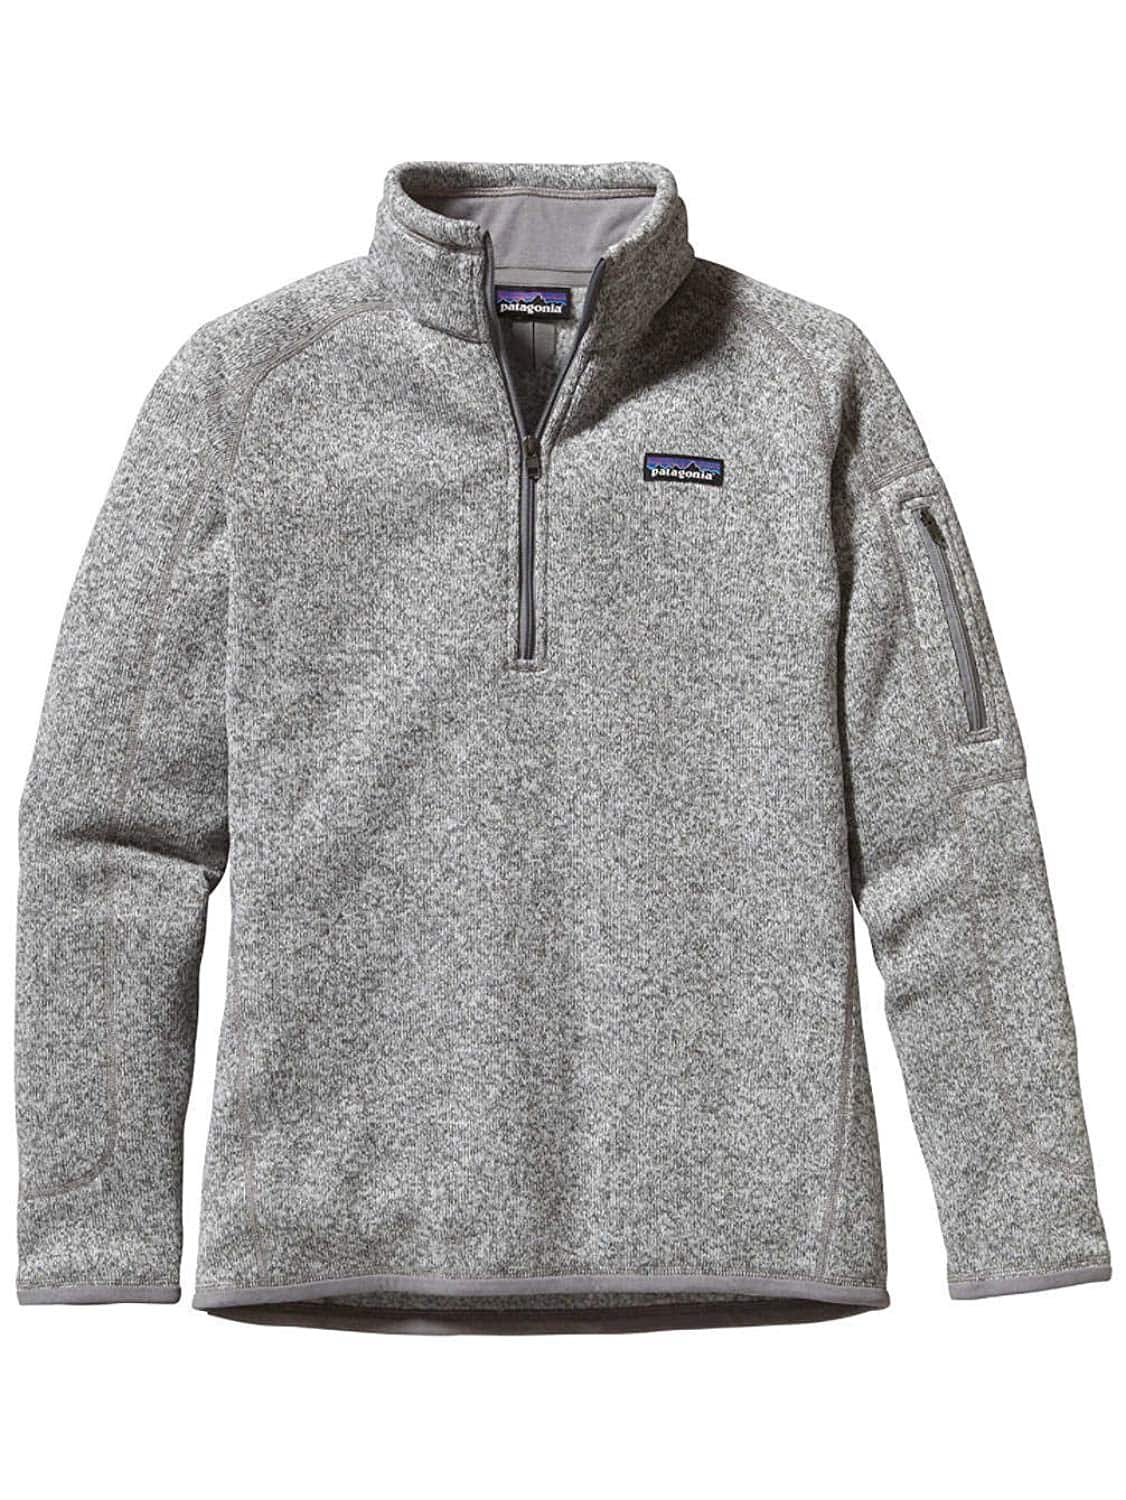 Patagonia Women's Better Sweater Quarter Zip Fleece Jacket, (Limited Sizes) Multiple colors